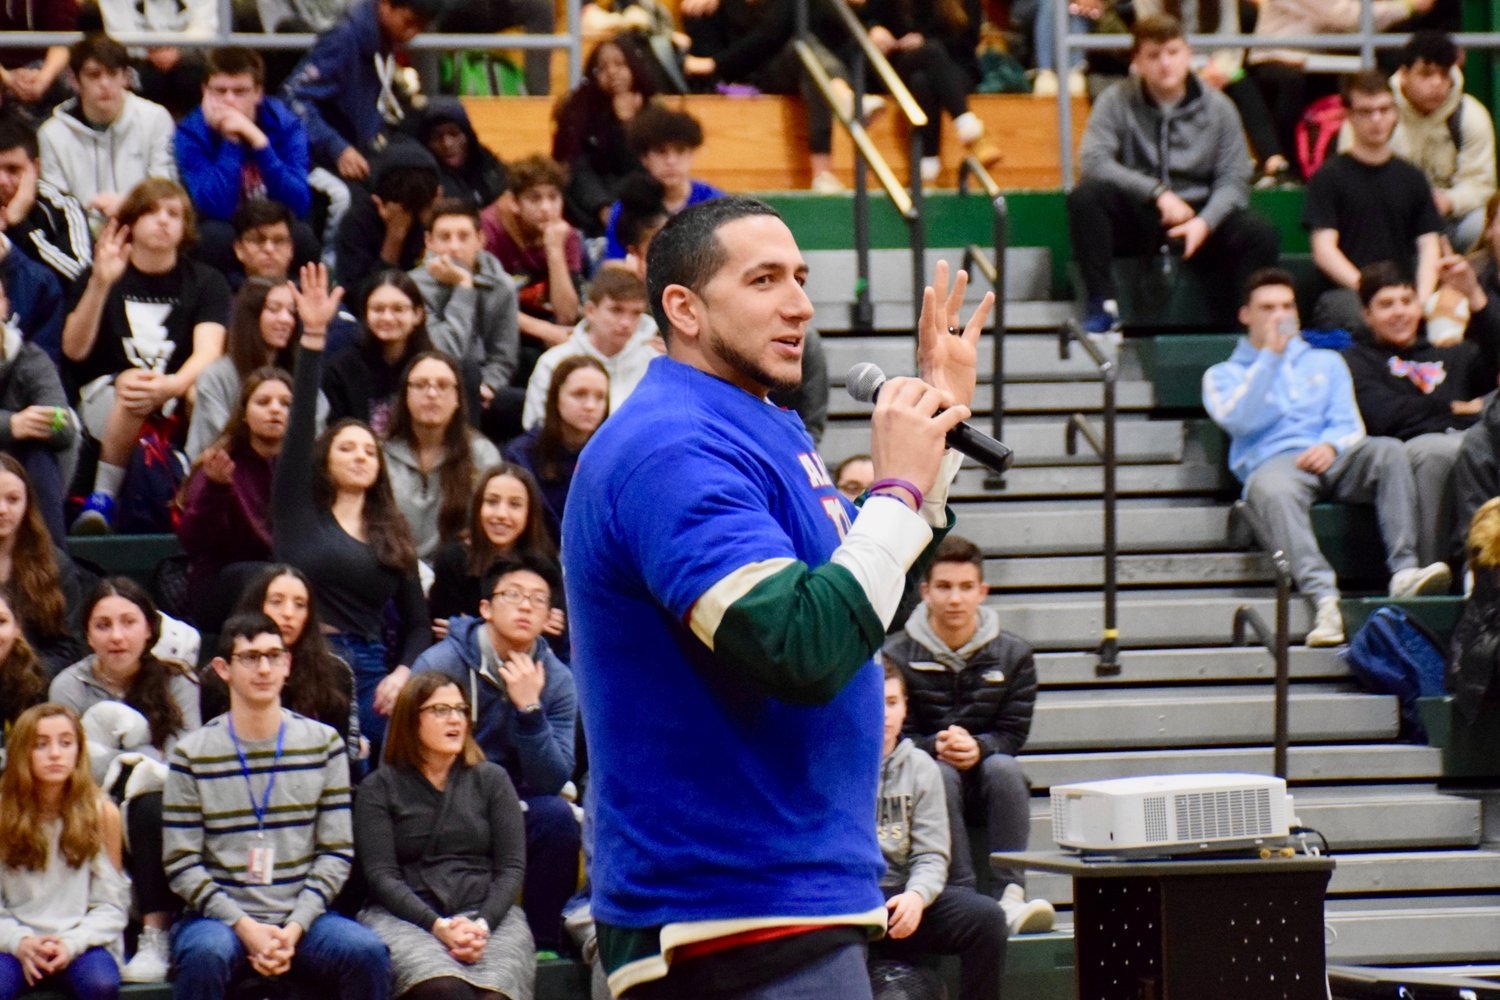 Gian Paul Gonzalez served as the keynote speaker.